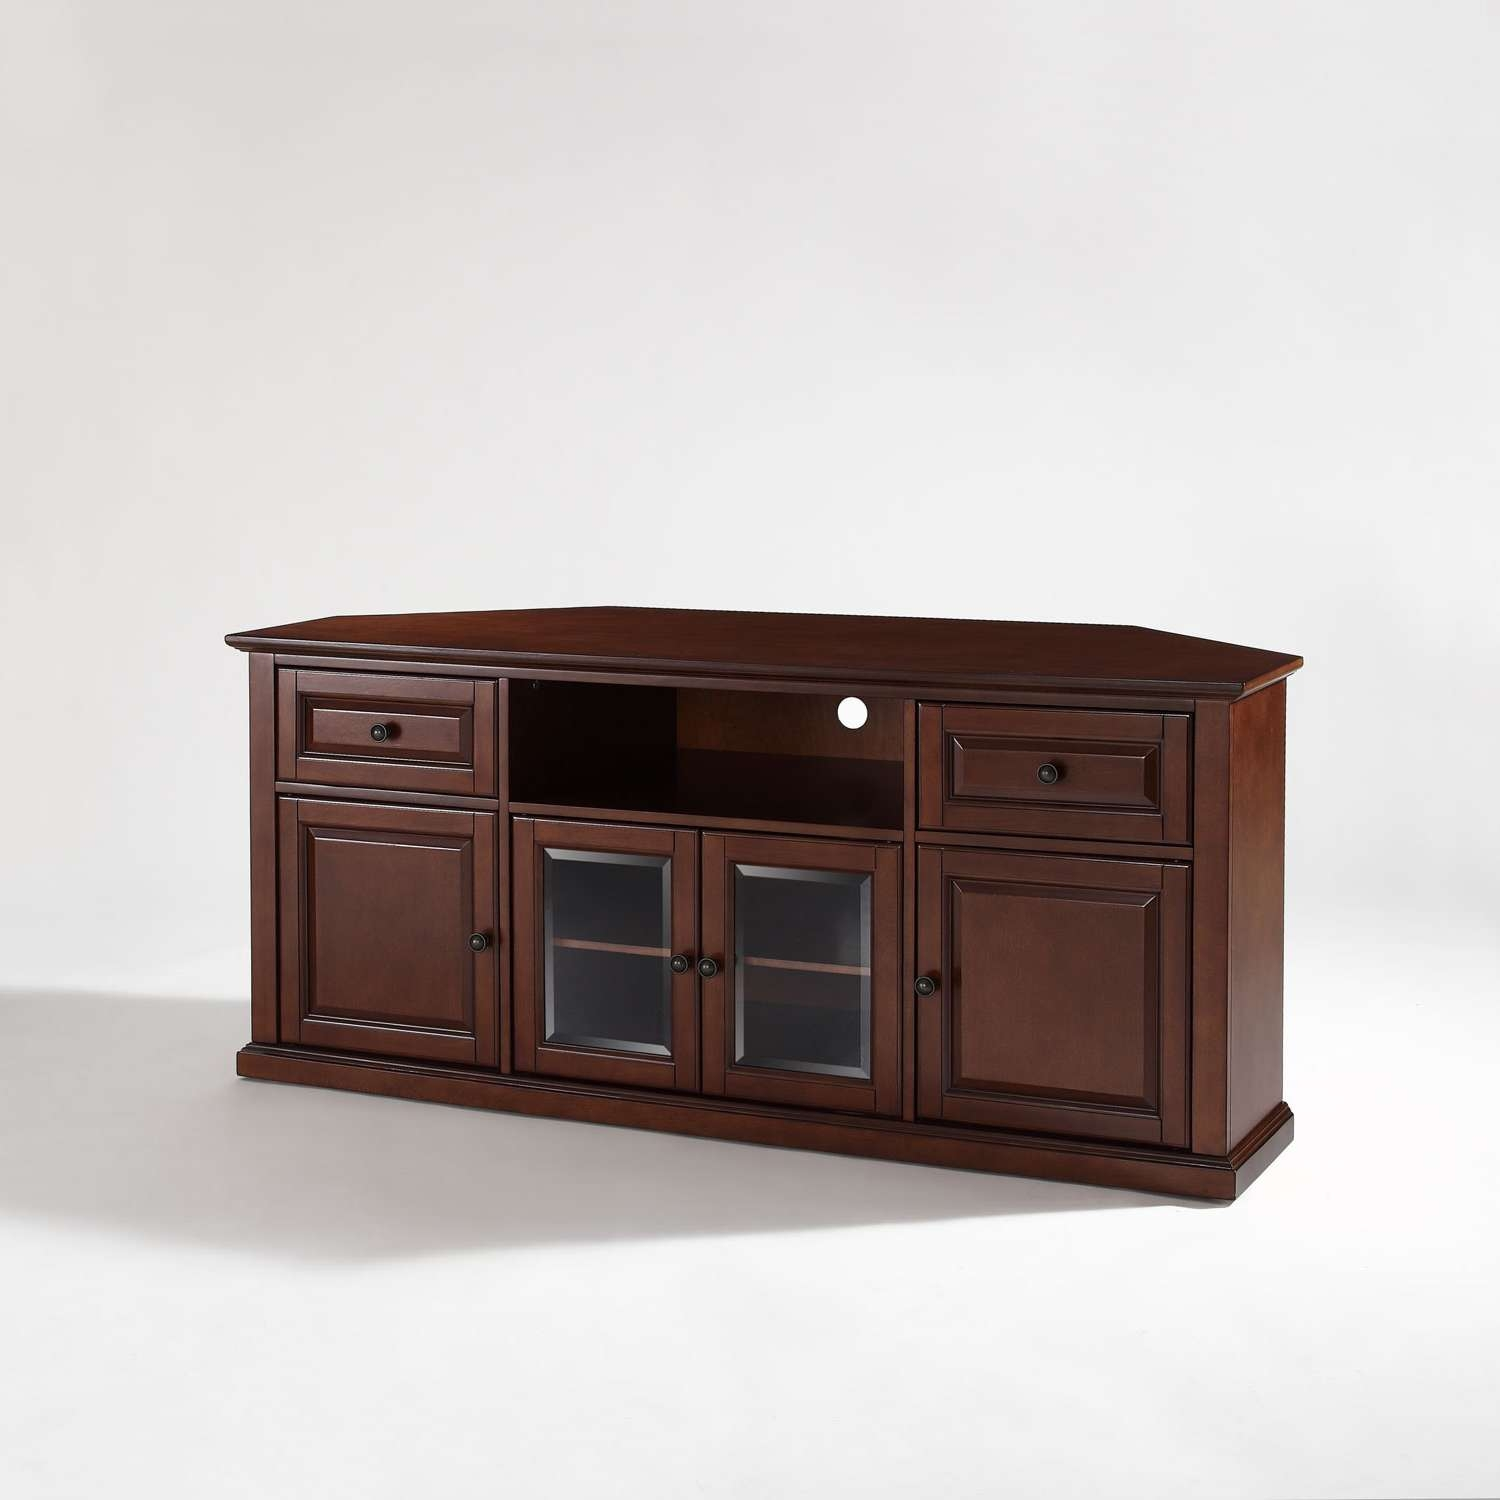 60 Inch Corner Tv Stand In Vintage Mahogany Crosley Furniture Regarding Mahogany Tv Stands (Gallery 4 of 15)